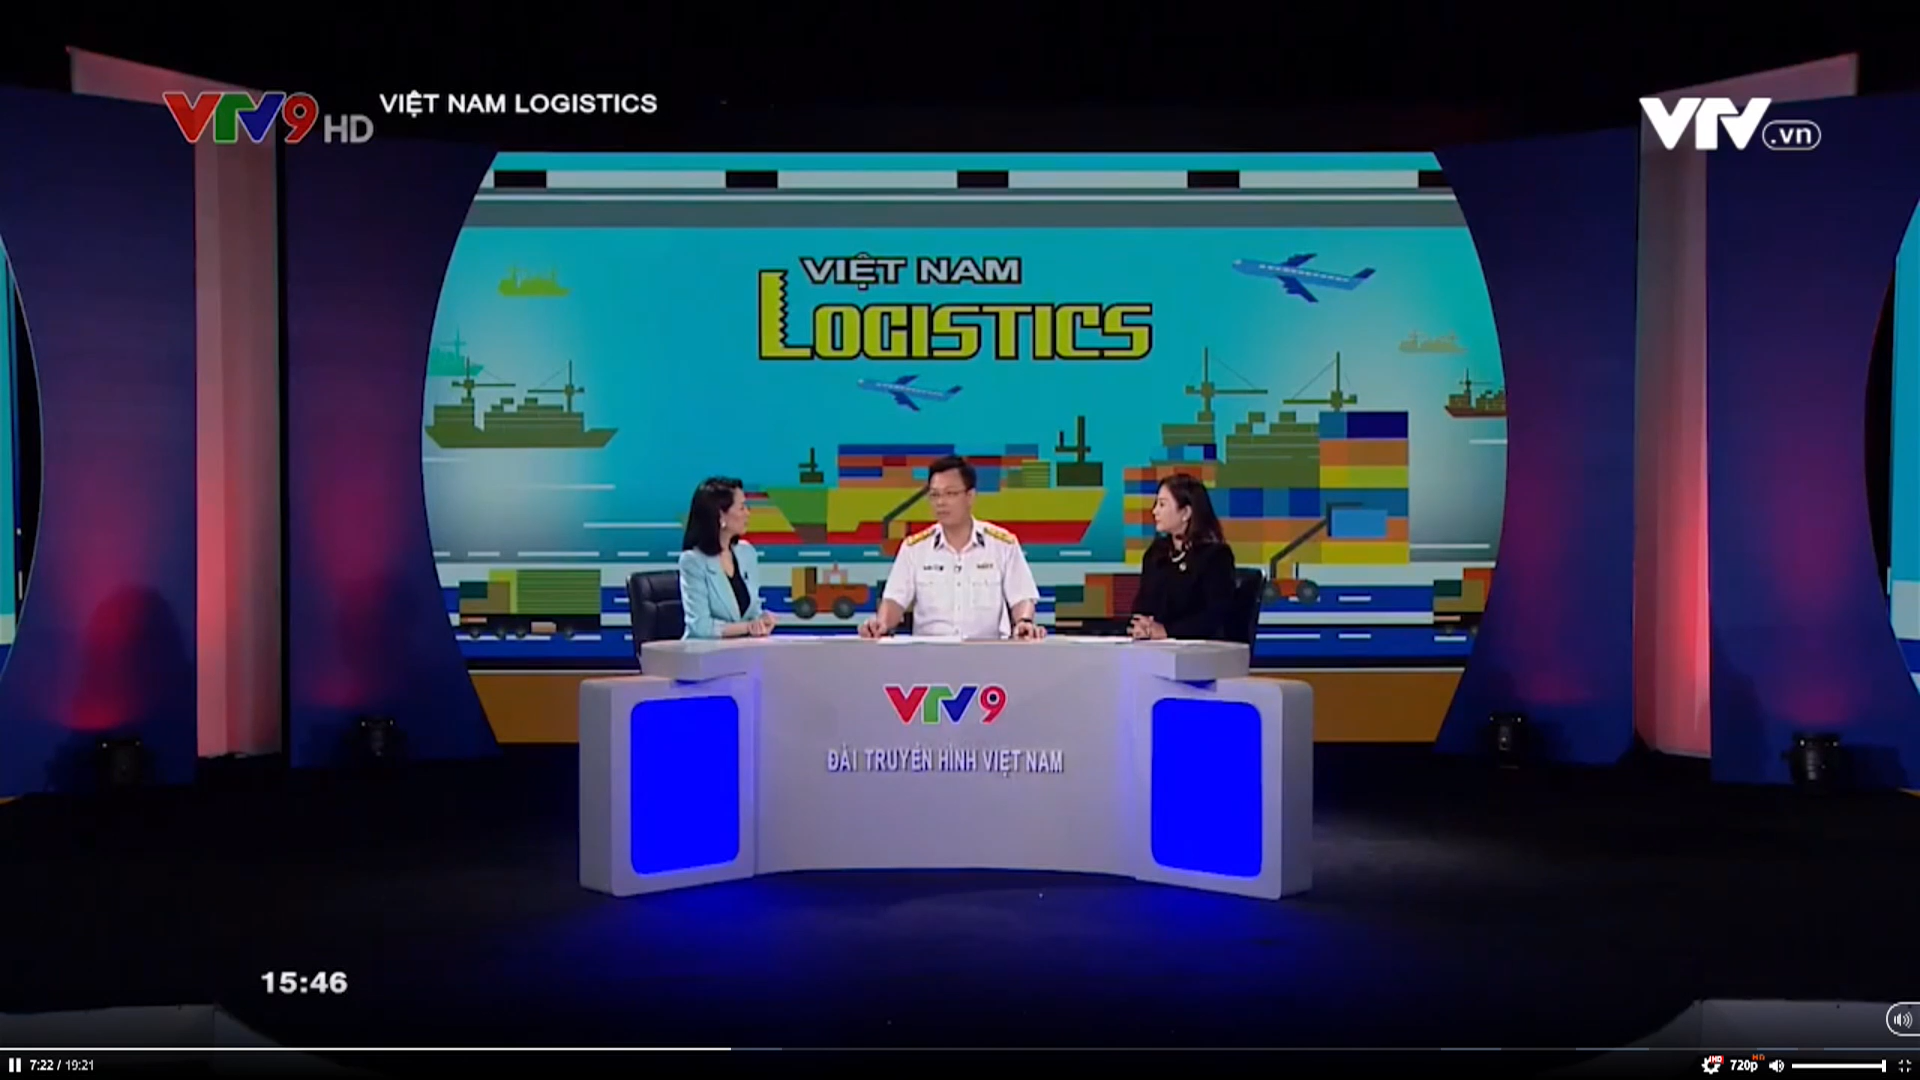 PM3 SIP participates in Logistics program on VTV9